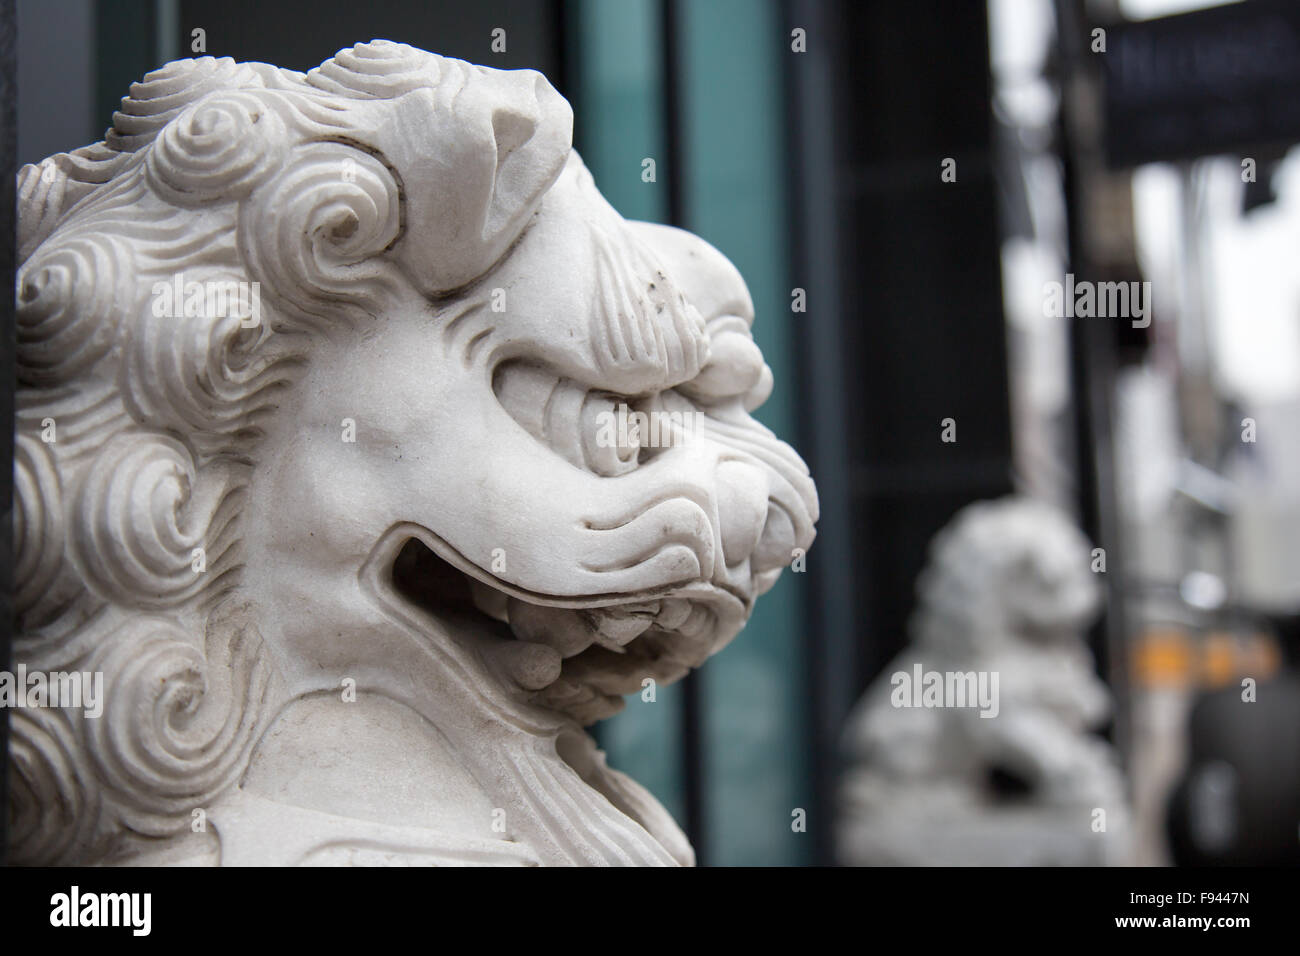 Fierce chinese dragon lion sculpture - Stock Image